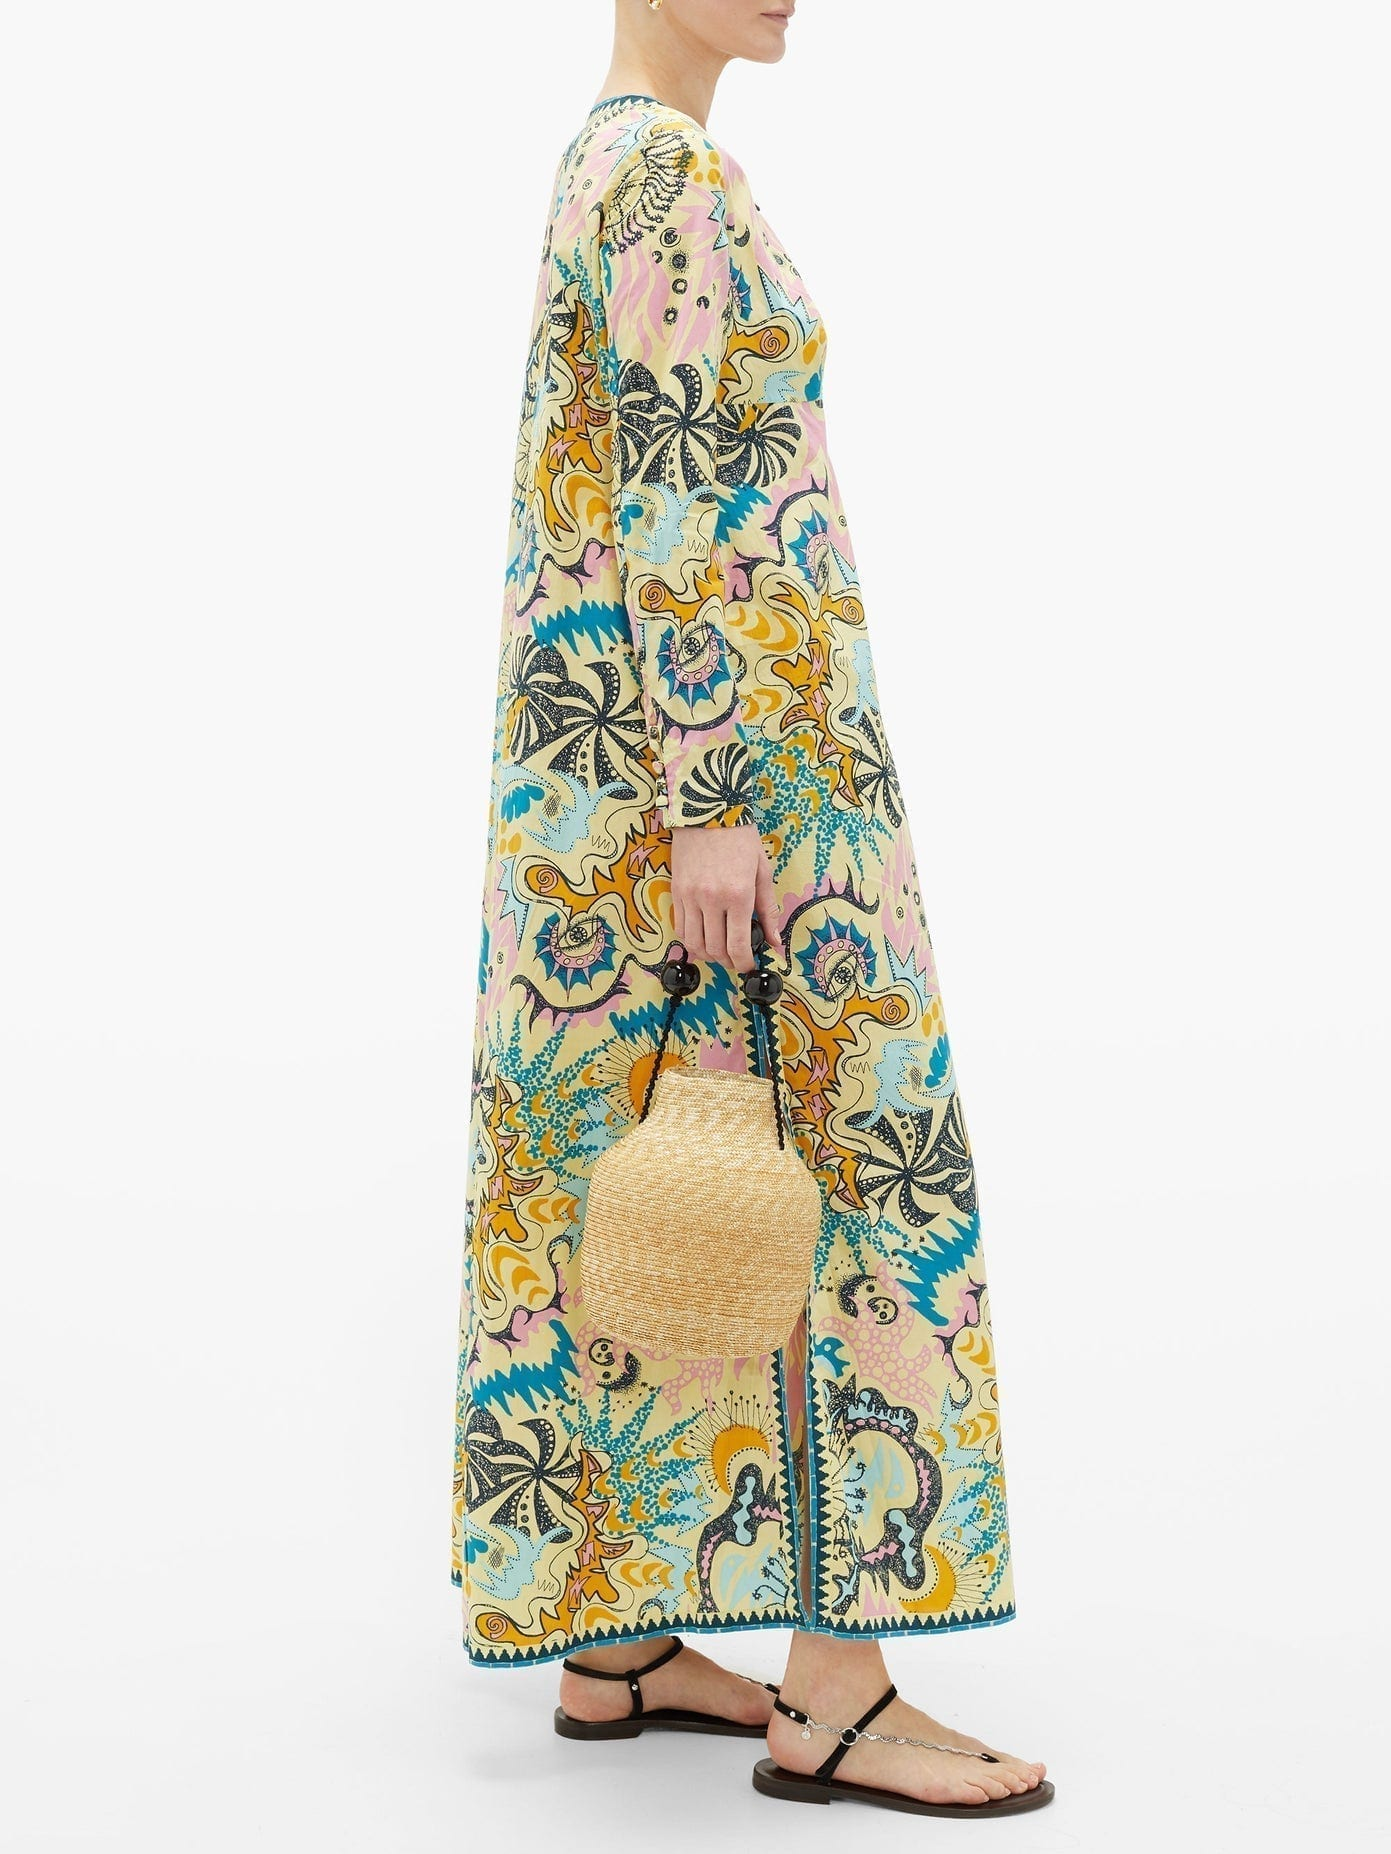 LE SIRENUSE POSITANO Cappa Psycho-print Cotton Maxi Dress